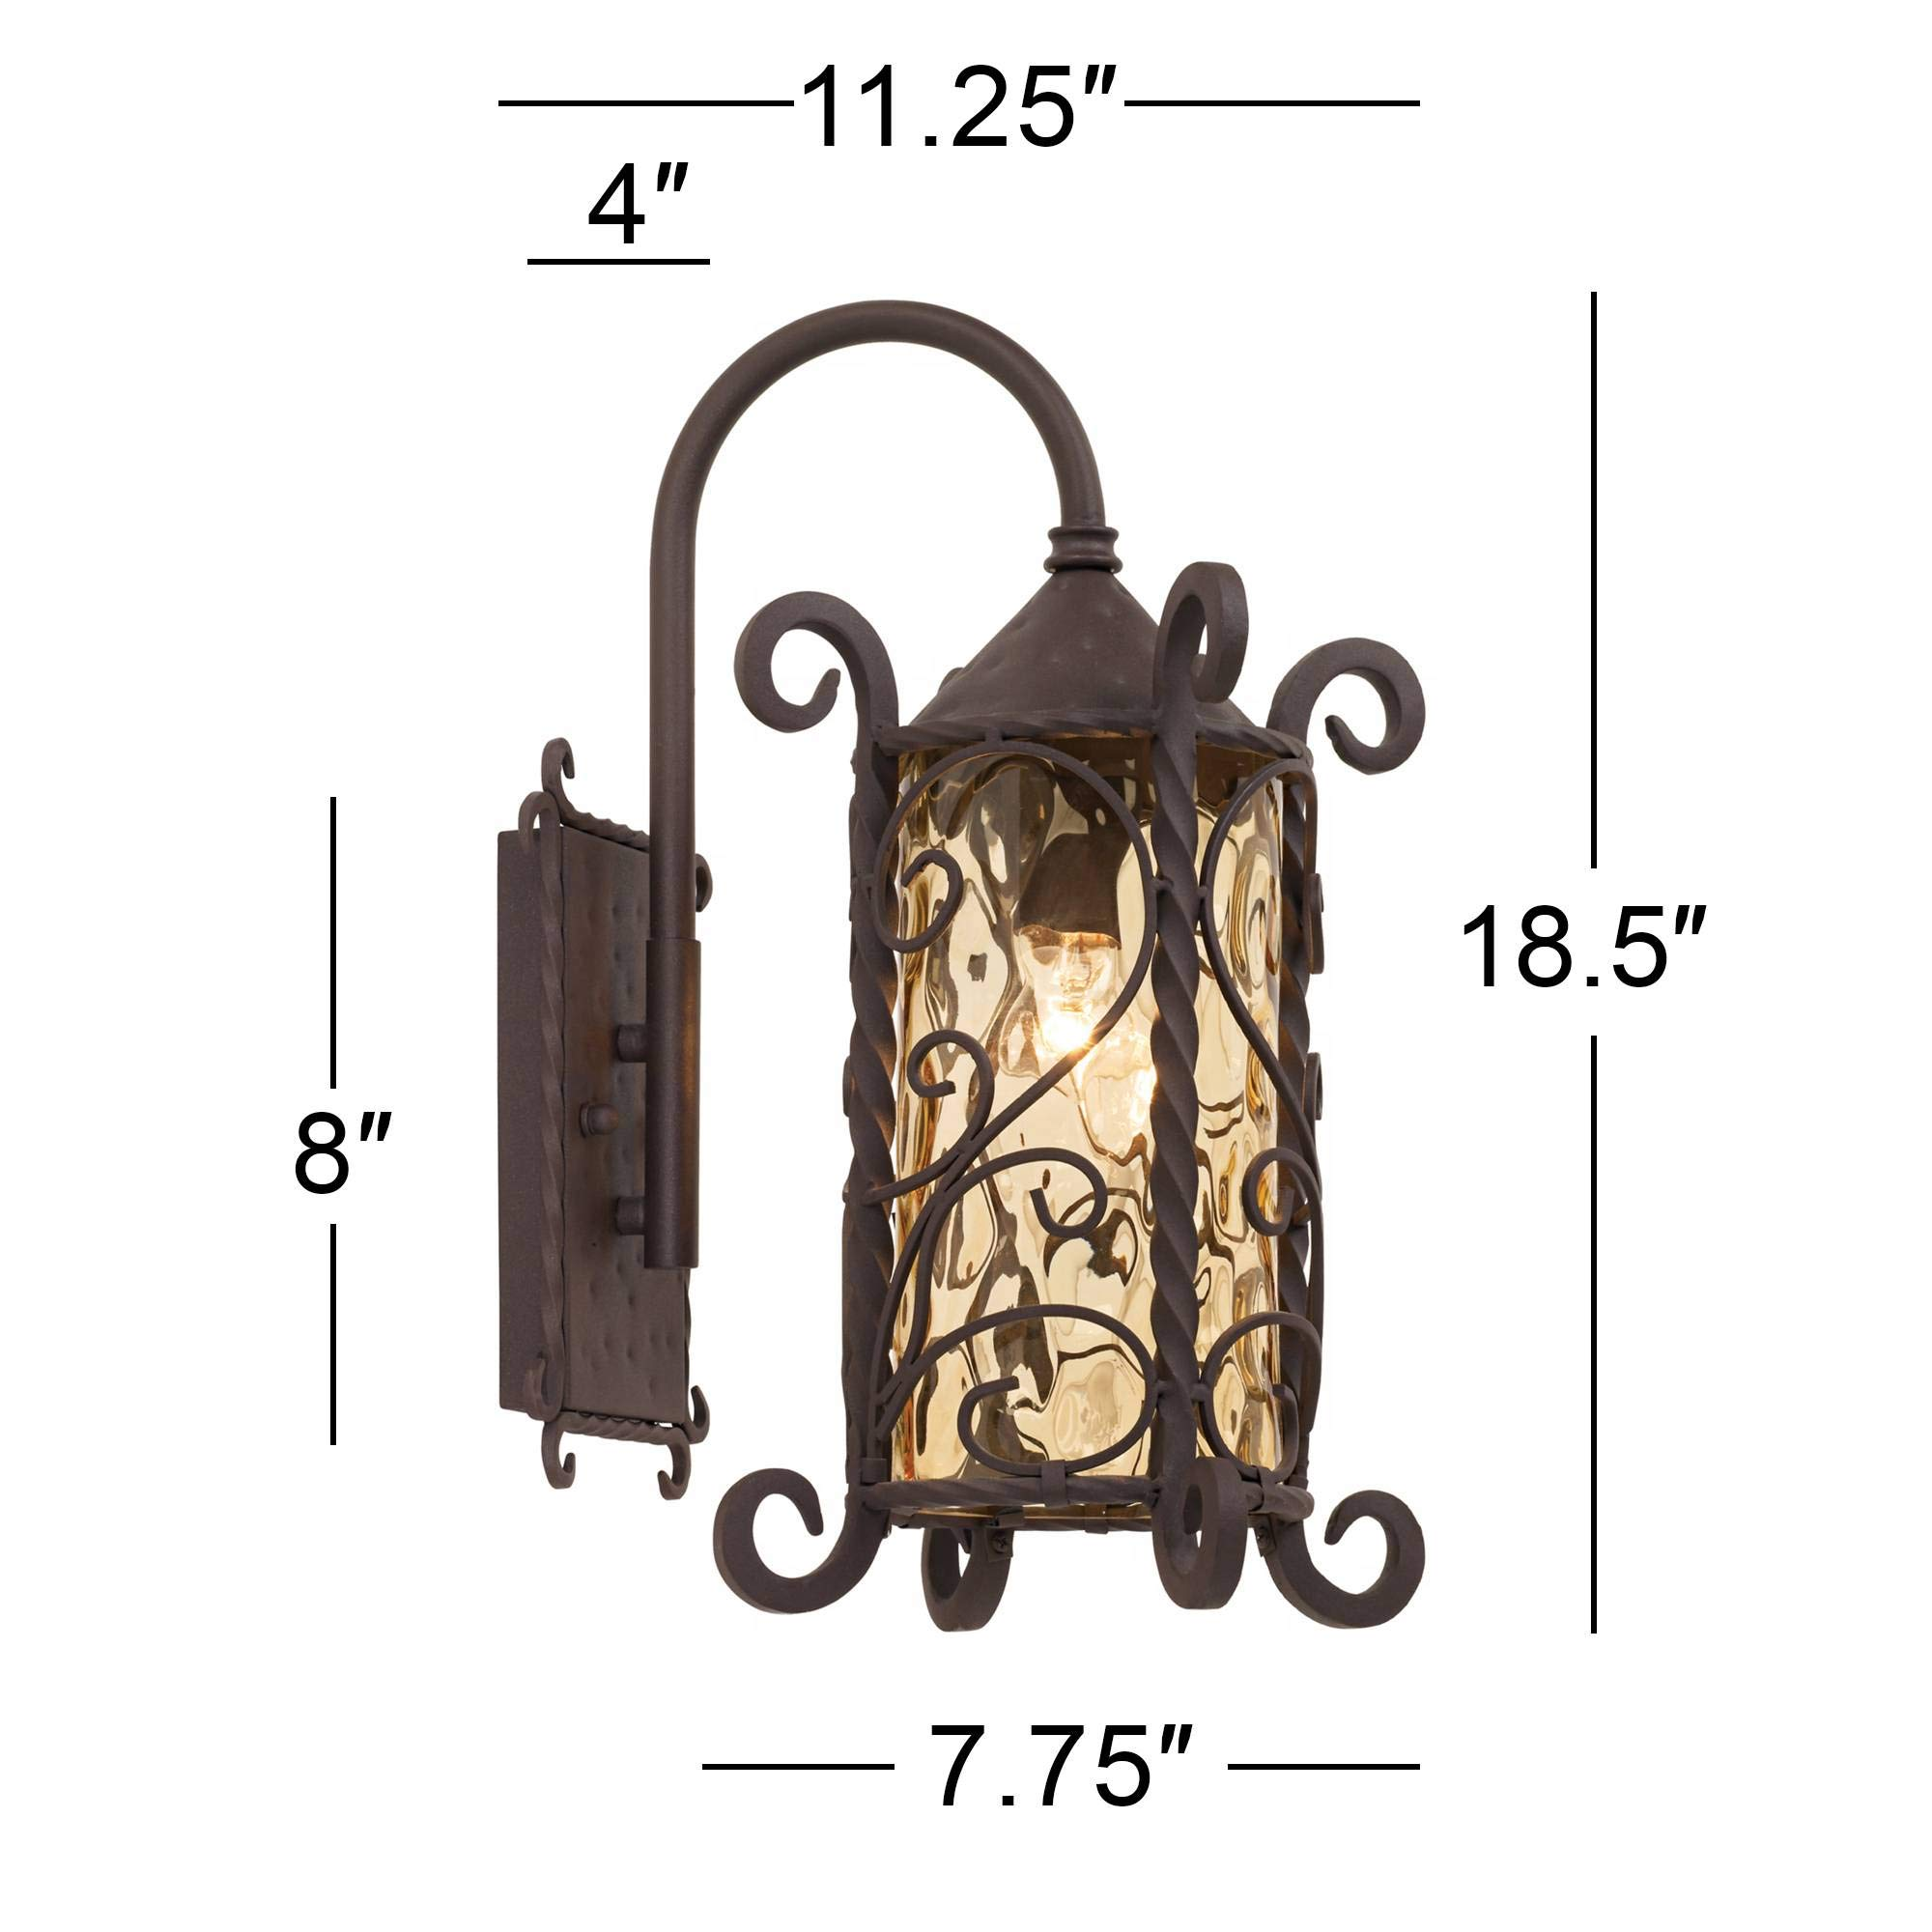 Casa Seville Rustic Outdoor Wall Light Fixture Mediterranean Inspired Dark Walnut Iron Twists 18 1/2'' Champagne Hammered Glass for Exterior House Porch Patio Deck - John Timberland by John Timberland (Image #6)